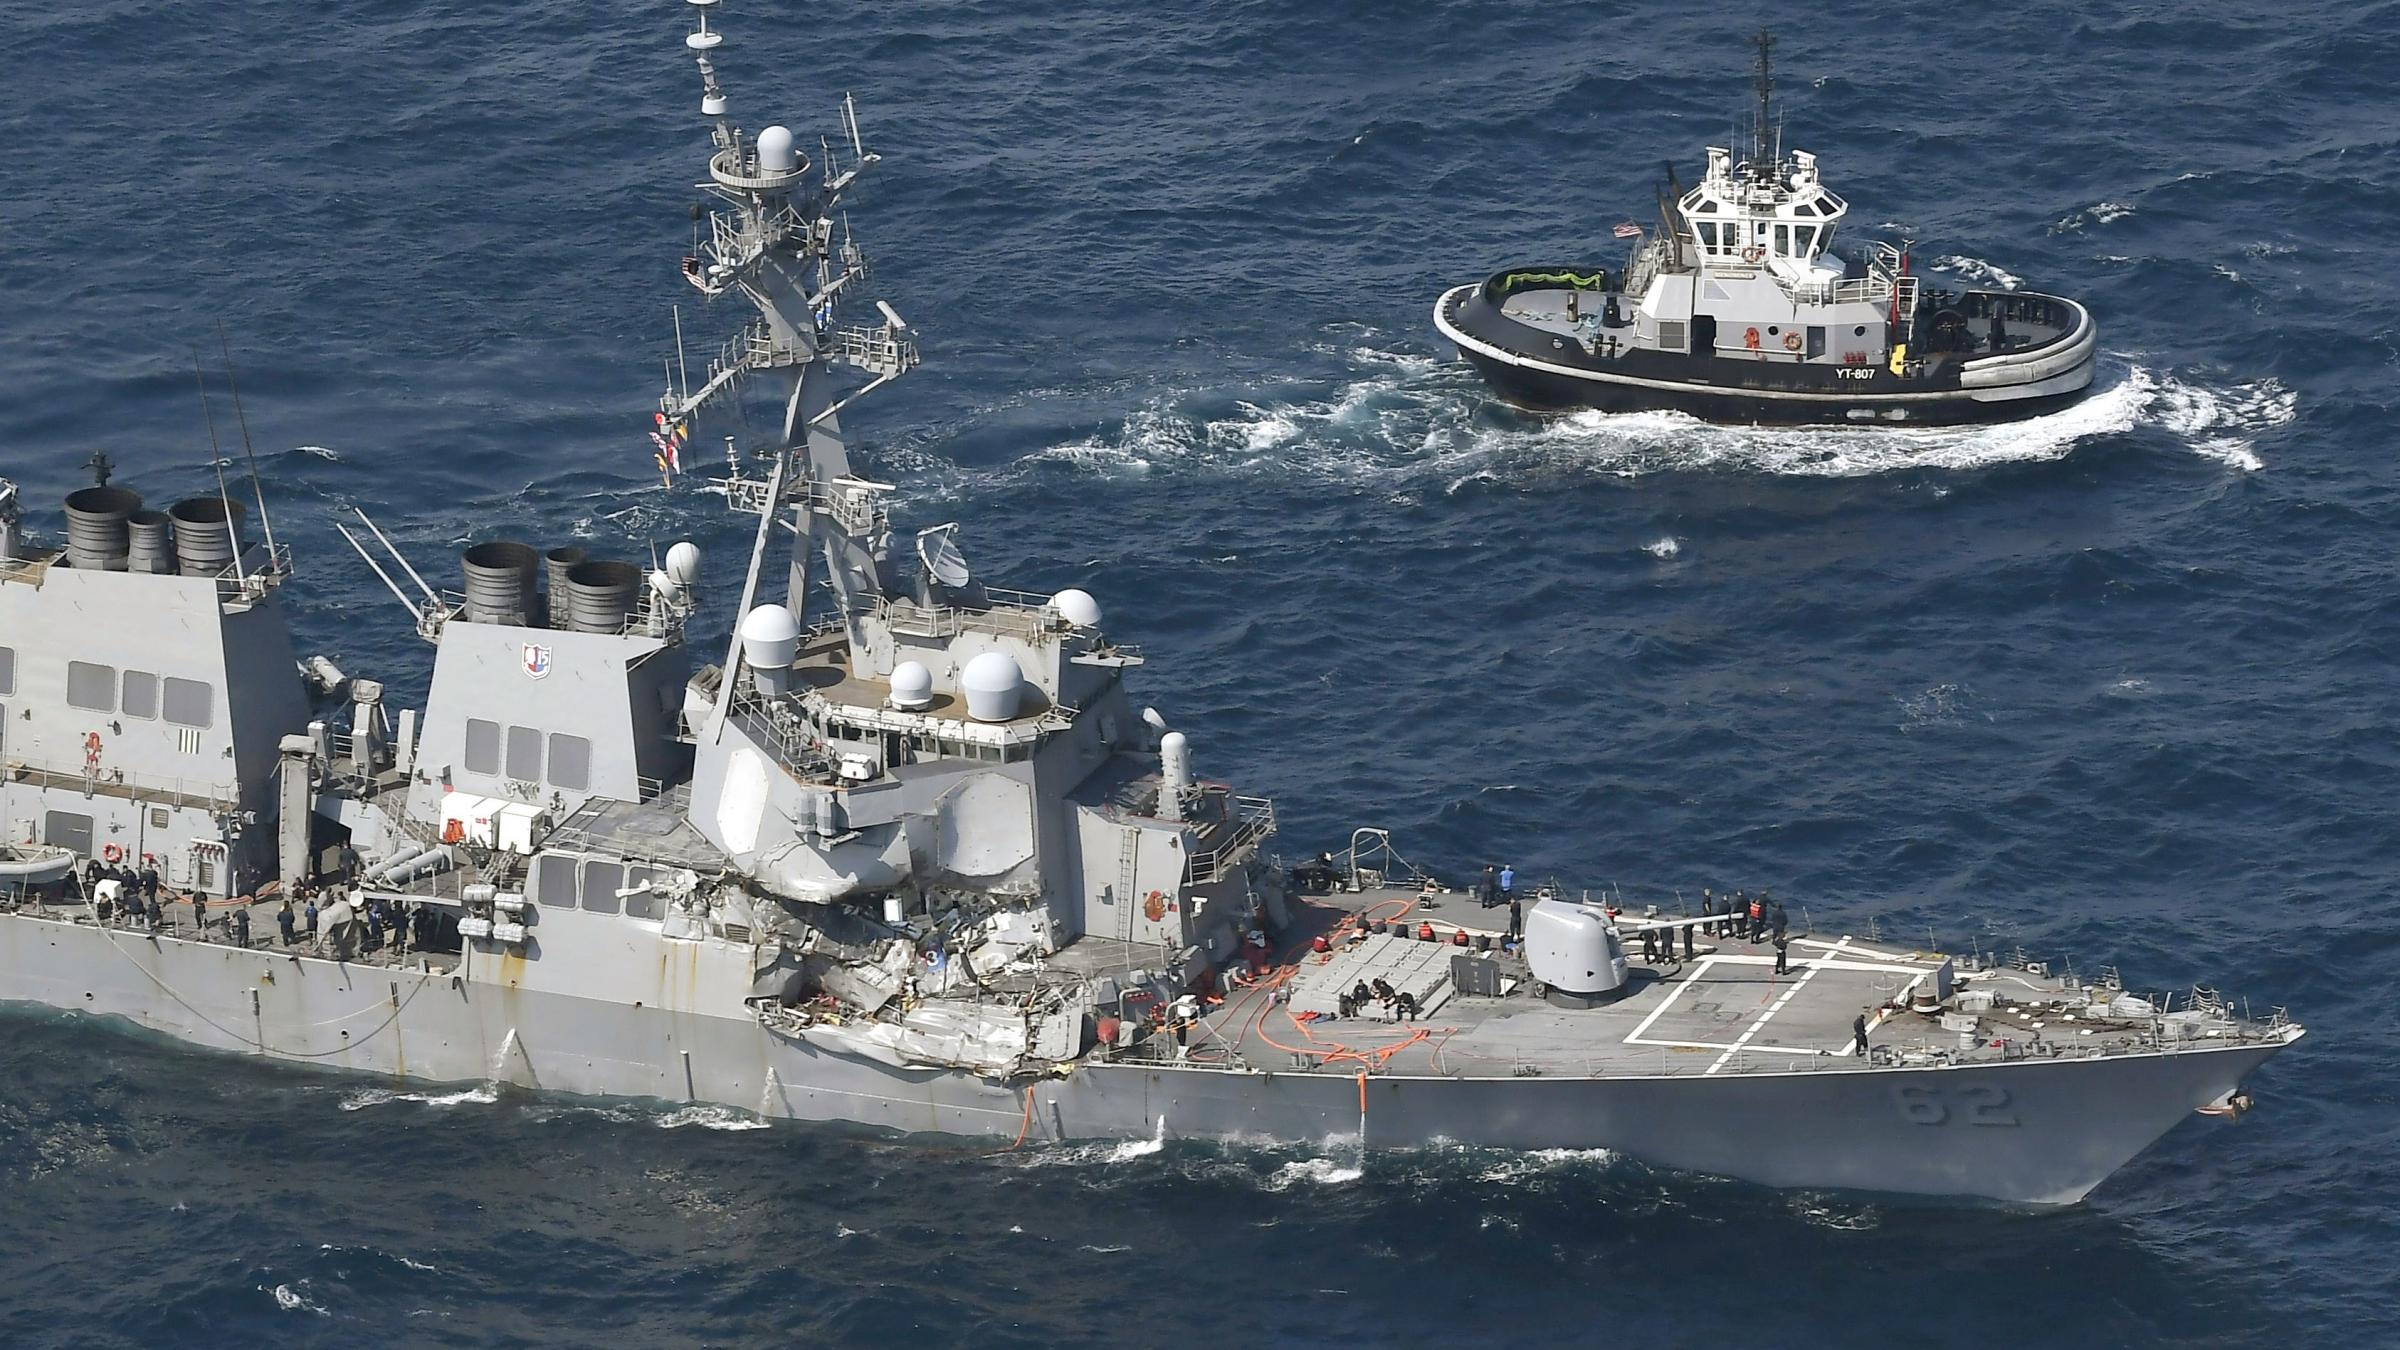 Seven Sailors Still Missing After Collision Between US Destroyer and Cargo Ship